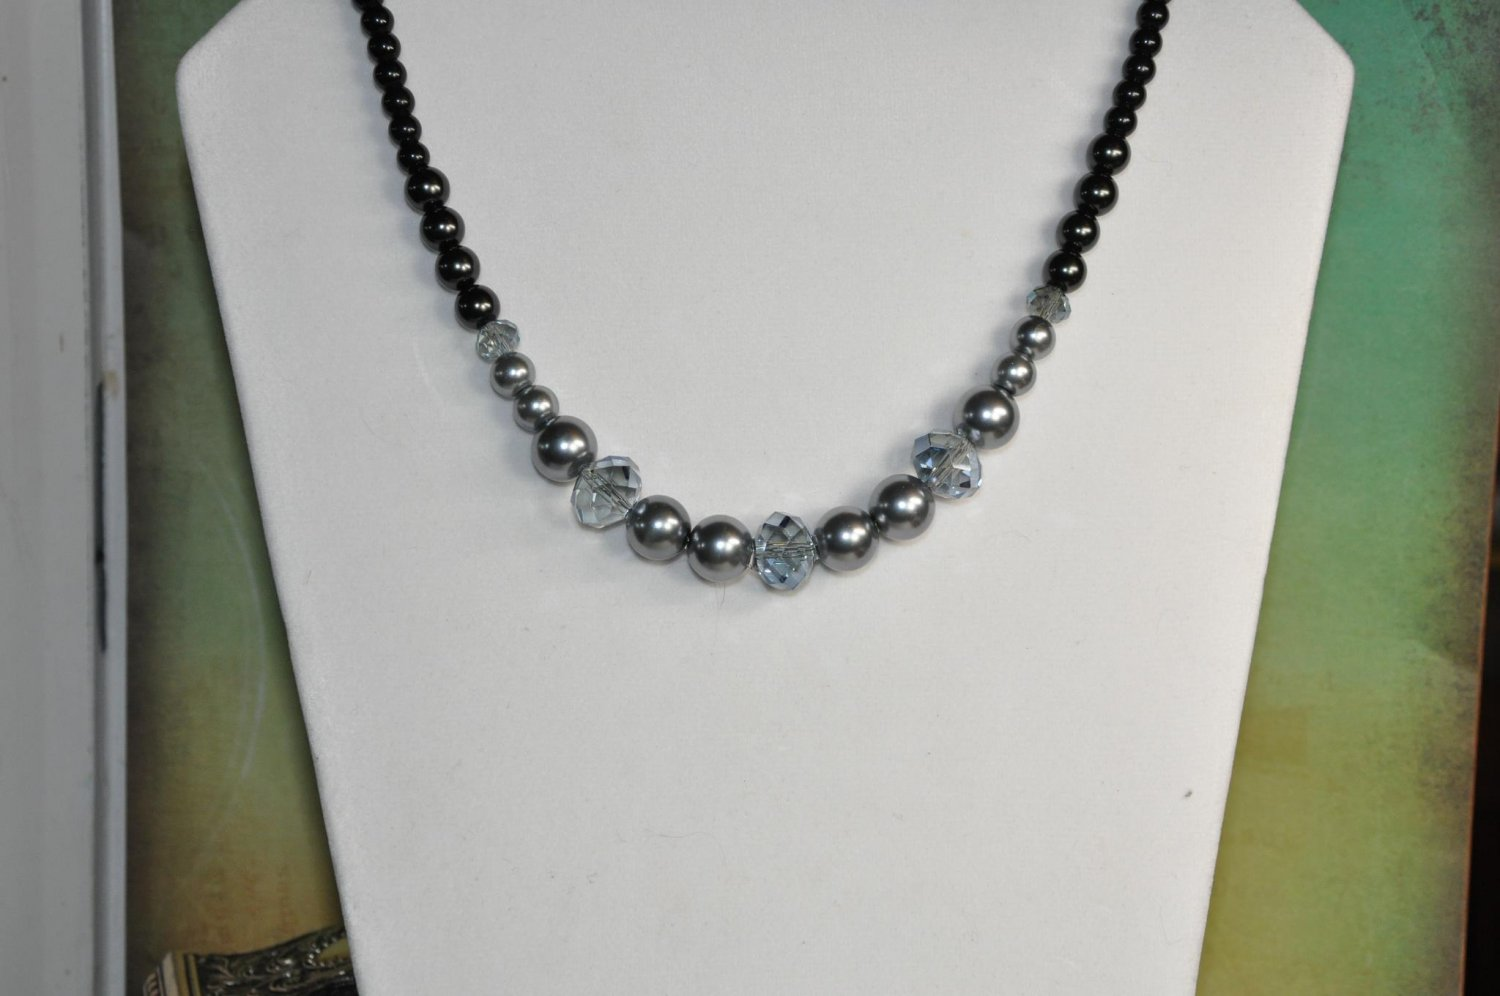 Stunning Black and Grey Crystal Pearl Chunky Bead Necklace